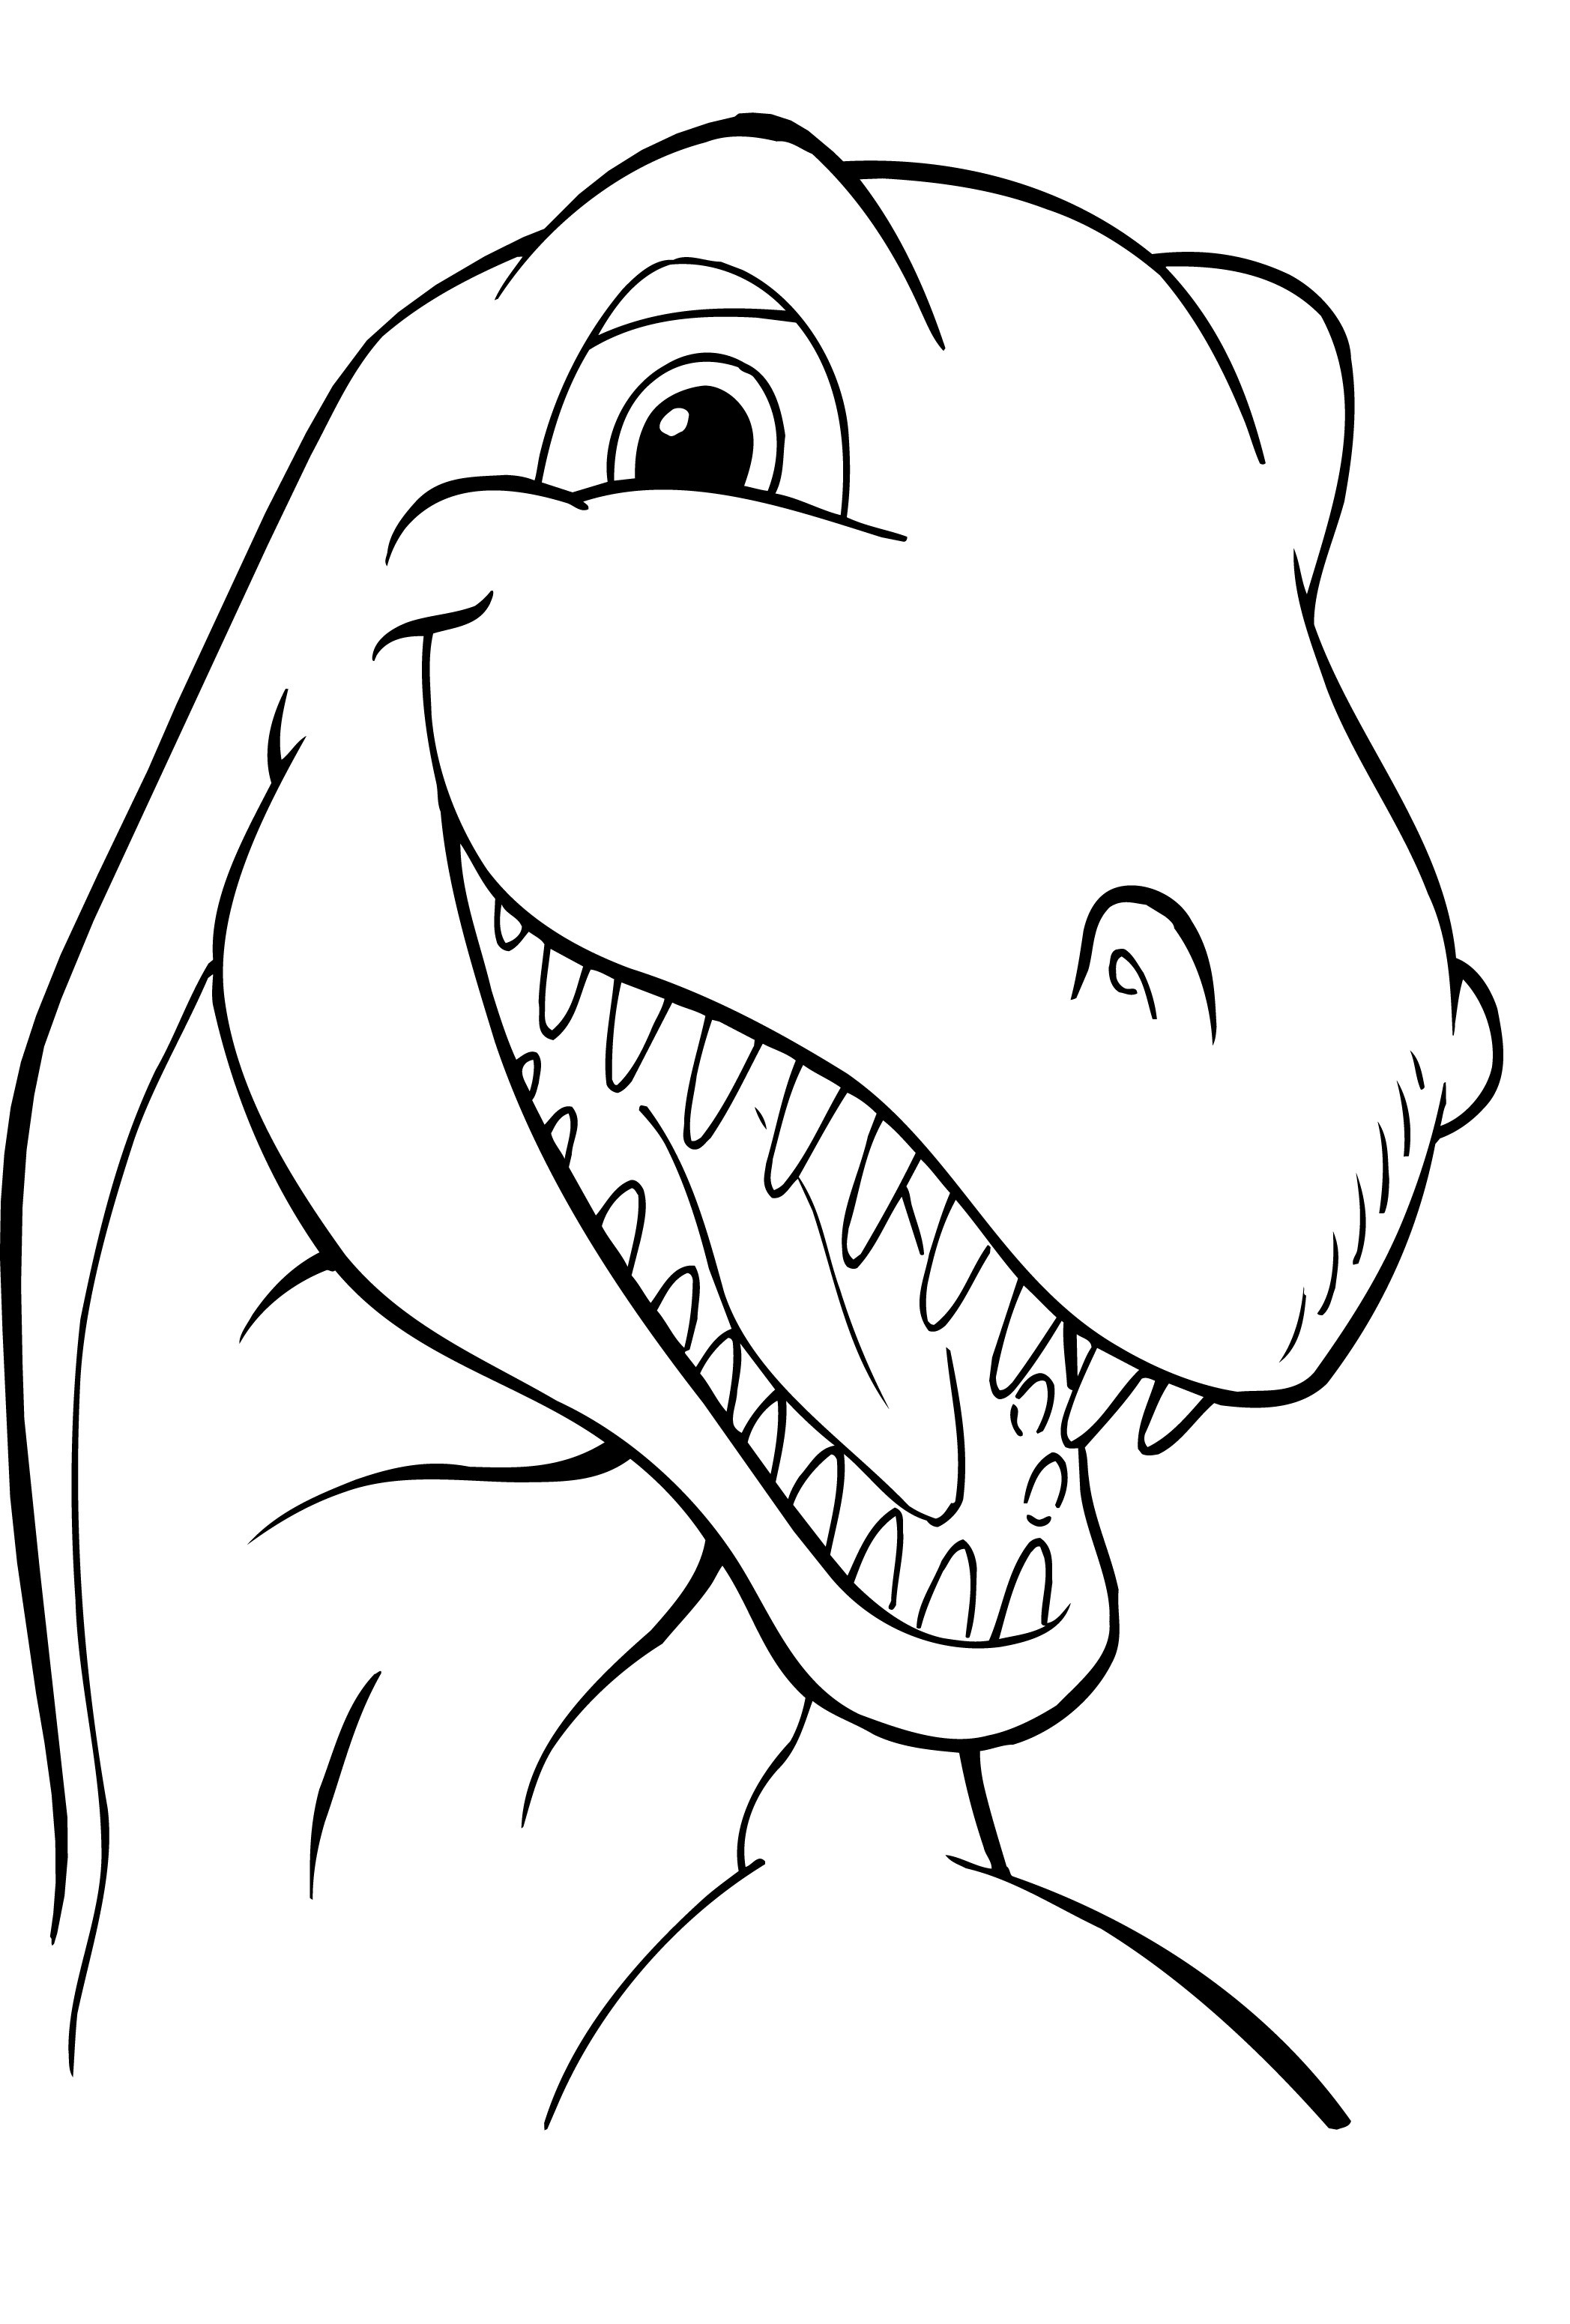 Dinosaur Coloring Pages Free Printable Dinosaur Coloring Pages For Kids